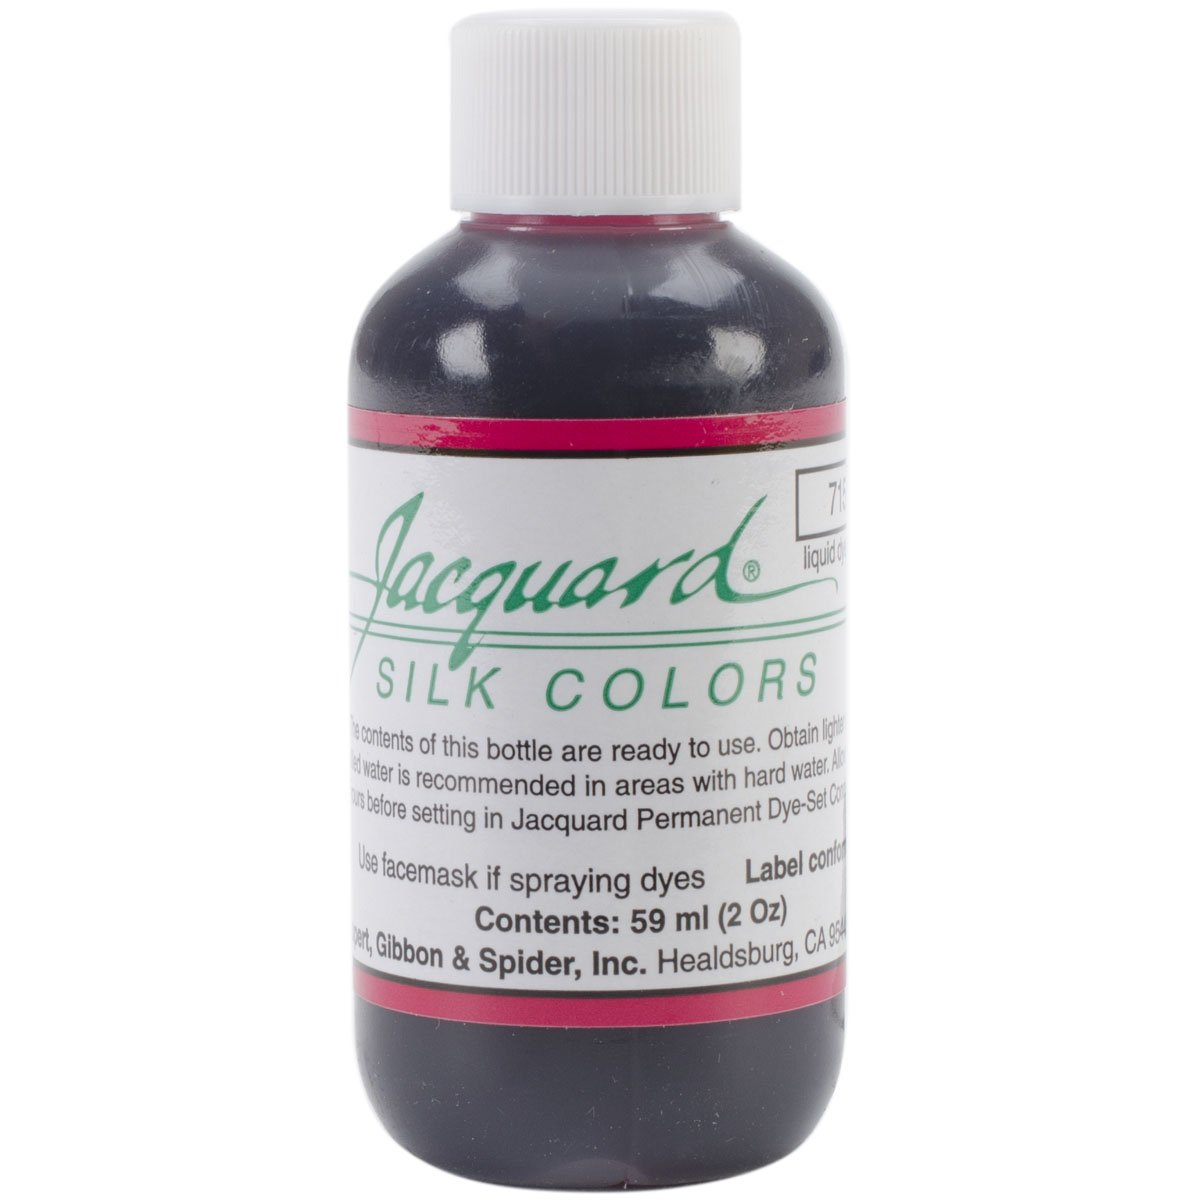 Jacquard Products Jacquard Silk Colors Dyes, 2-Ounce, Magenta jacquard green label silk colors cyan [pack of 3 ]